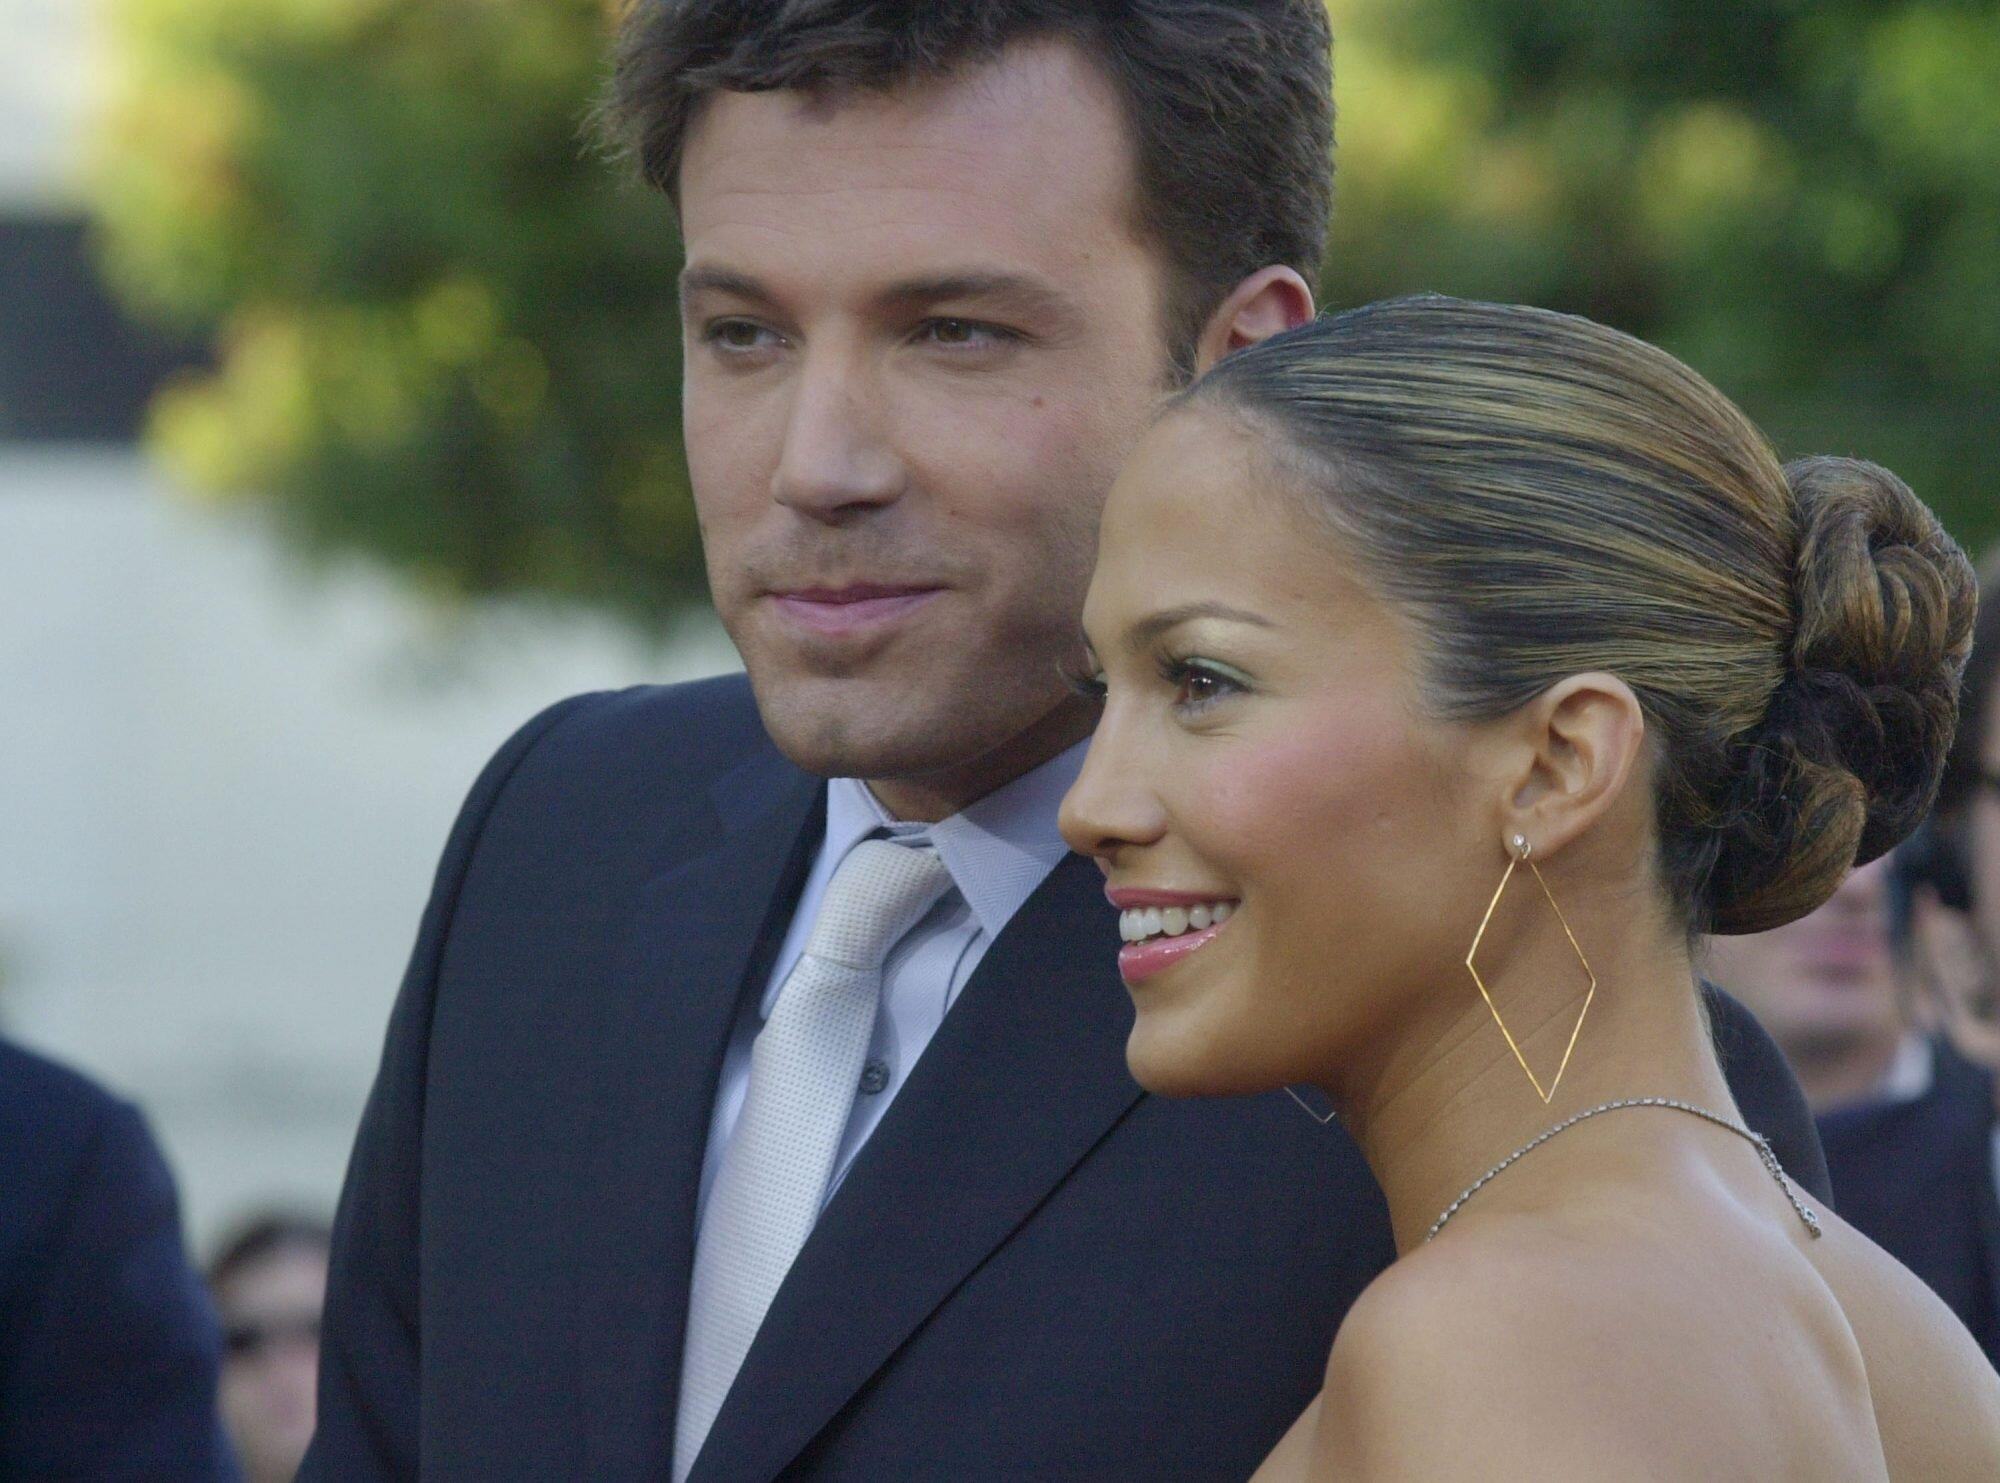 Jennifer Lopez and Ben Affleck are back together after the singer split up with ARod!